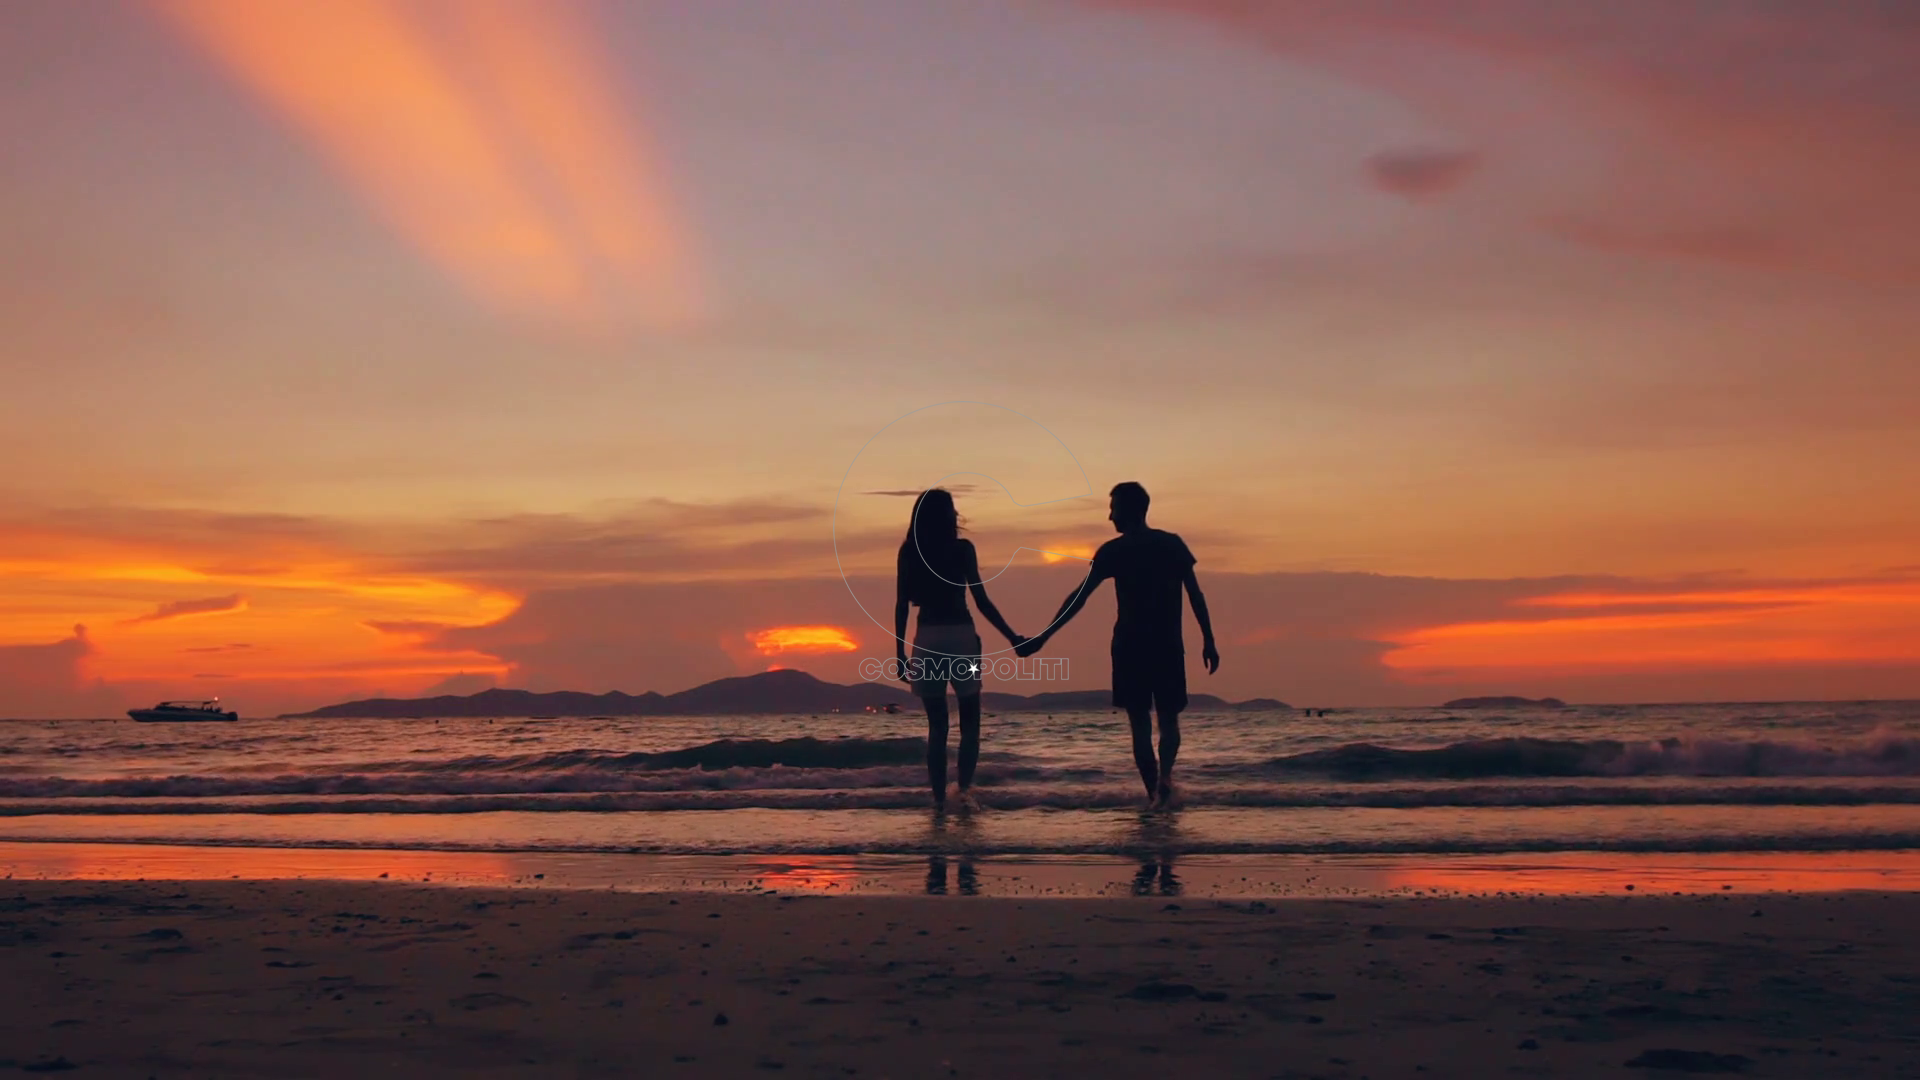 ac1c522cf1c10749f8d8dc965fd405d7_slow-motion-silhouette-of-happy-loving-couple-kiss-and-go-to-beach-_1920-1080